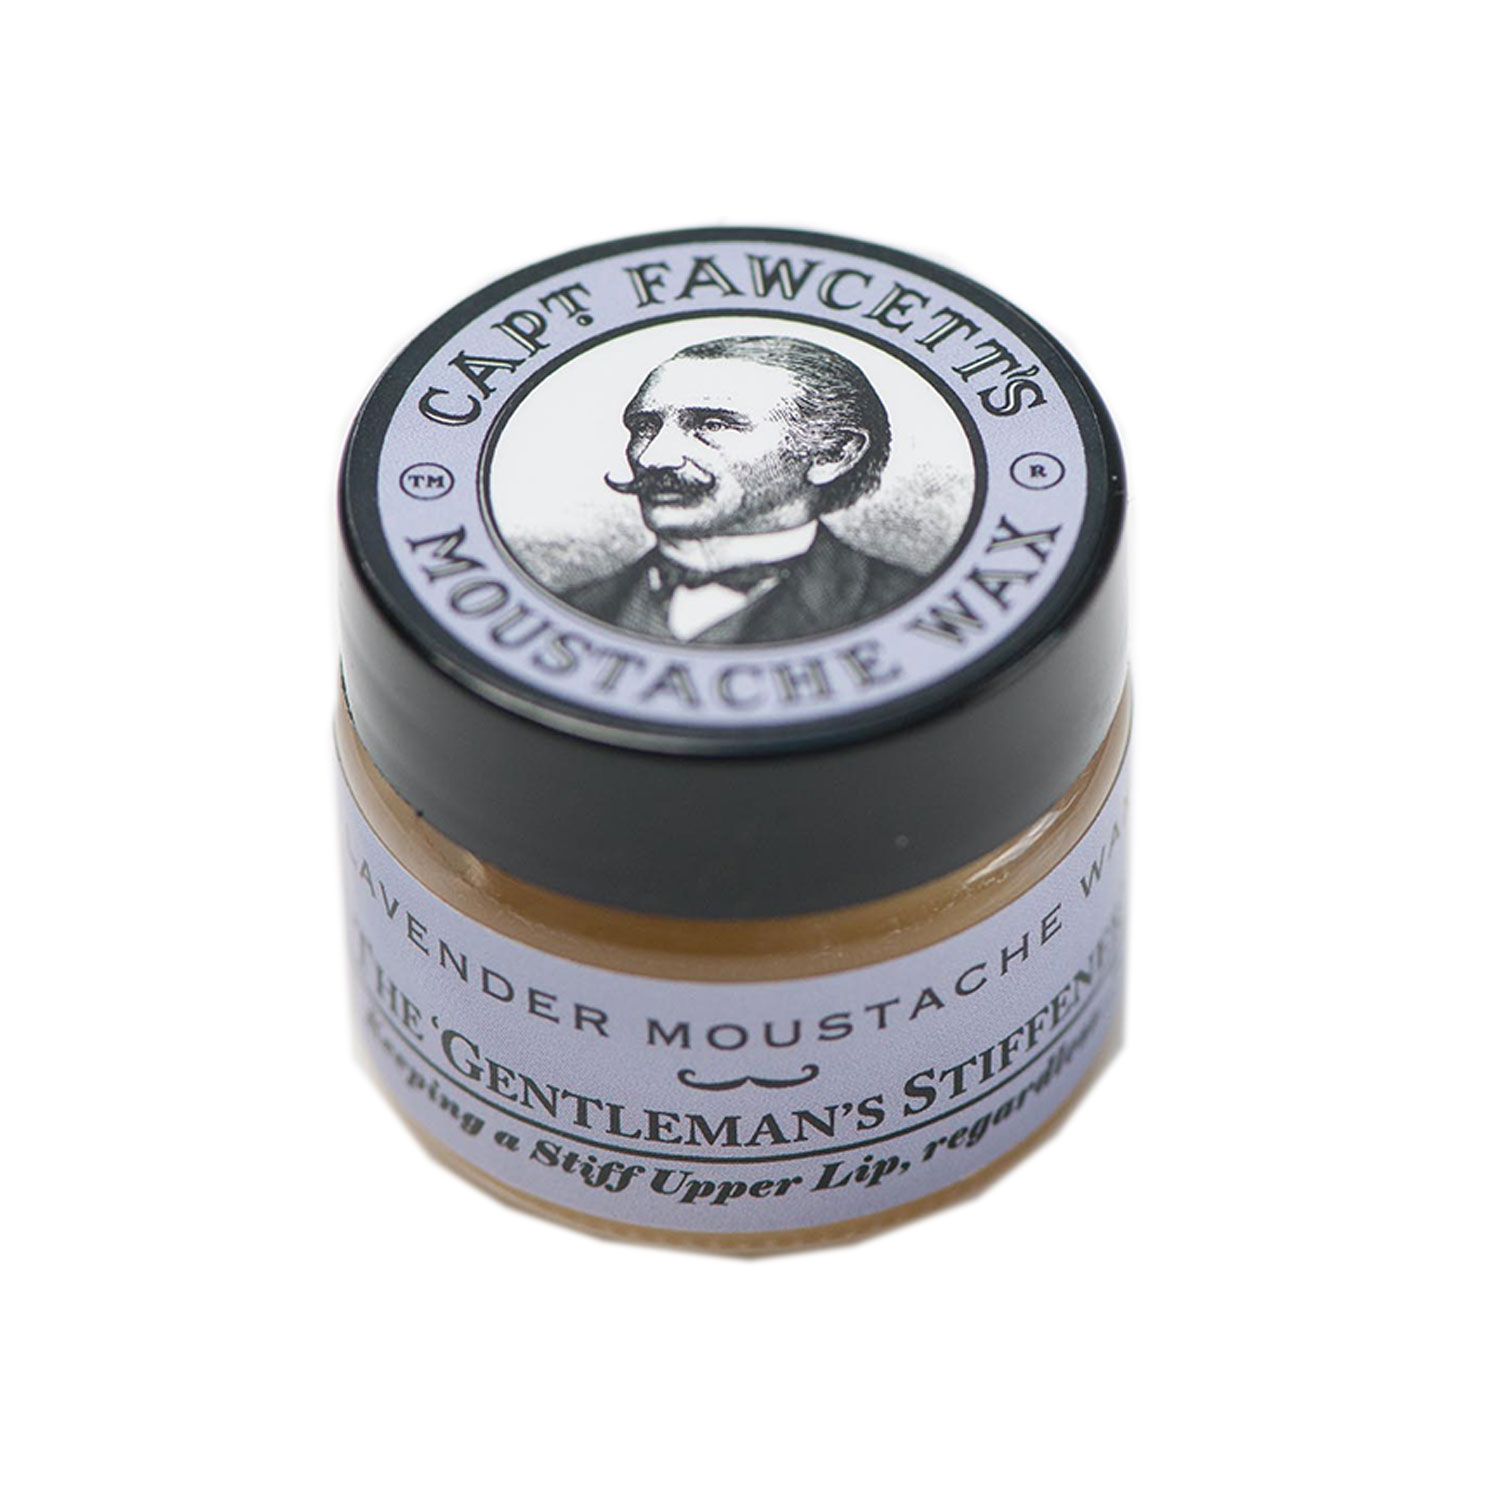 Capt. Fawcett Care - Lavender Moustache Wax